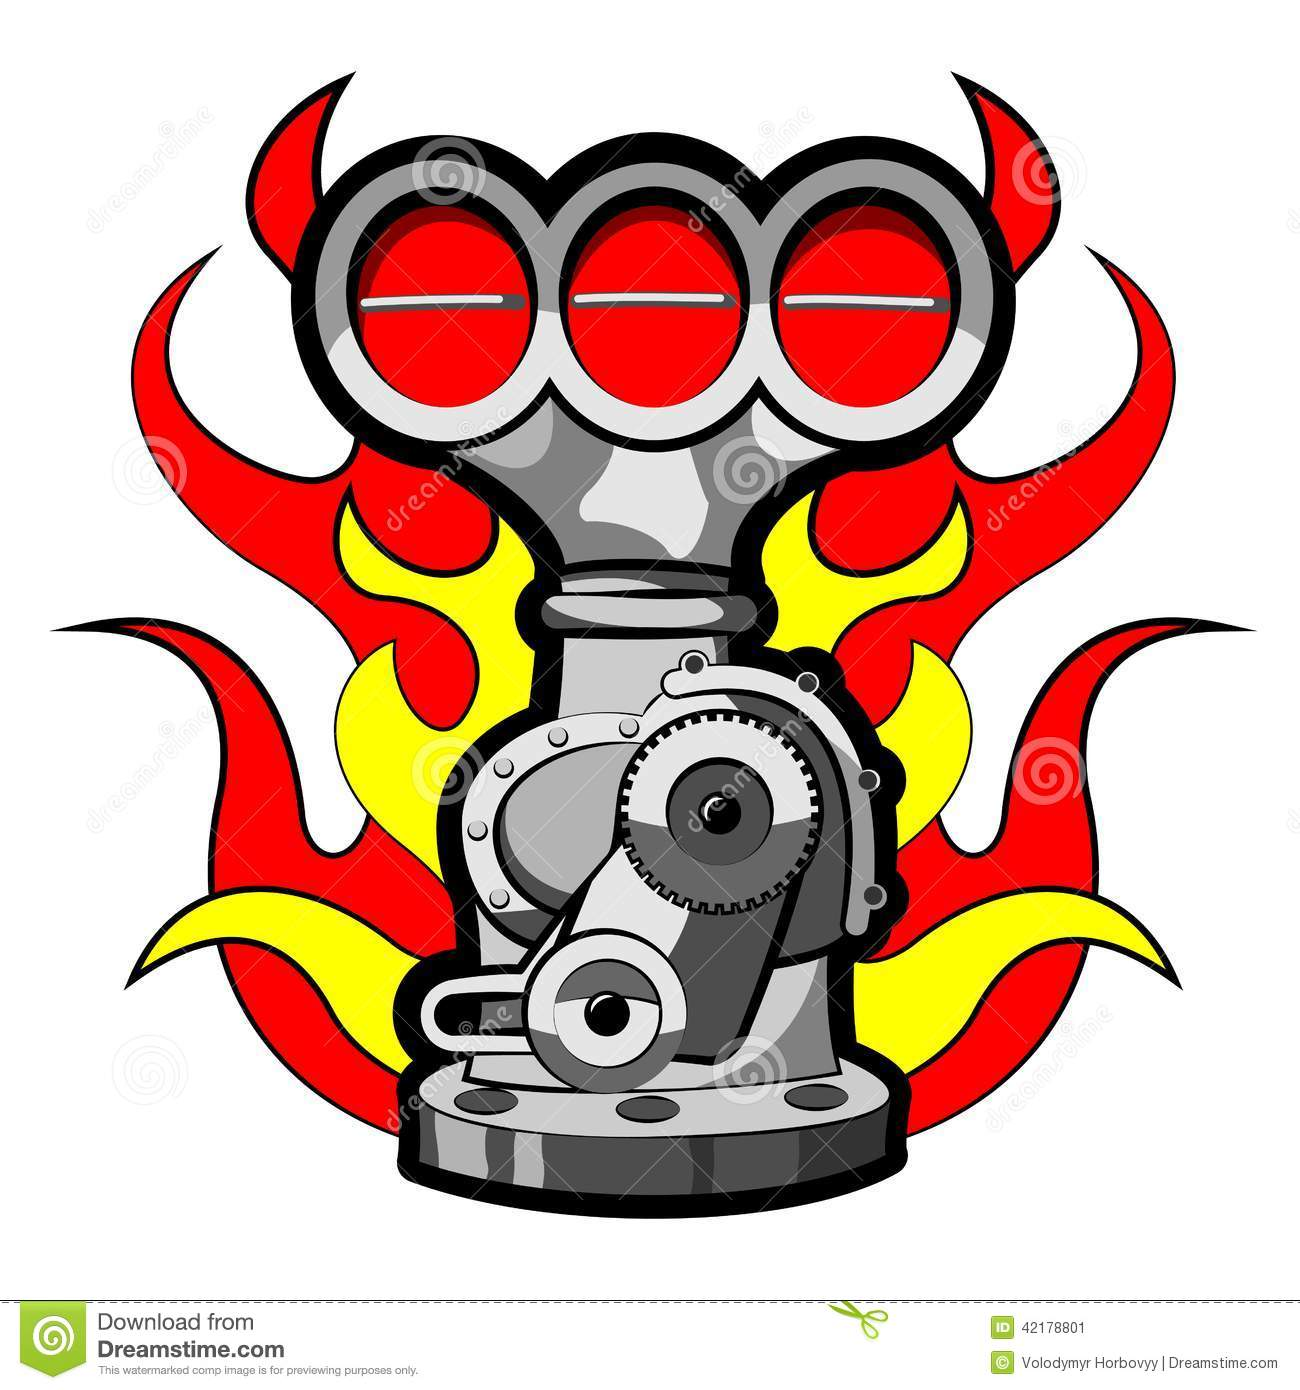 Gear Car Tattoo >> Supercharger Stock Vector - Image: 42178801